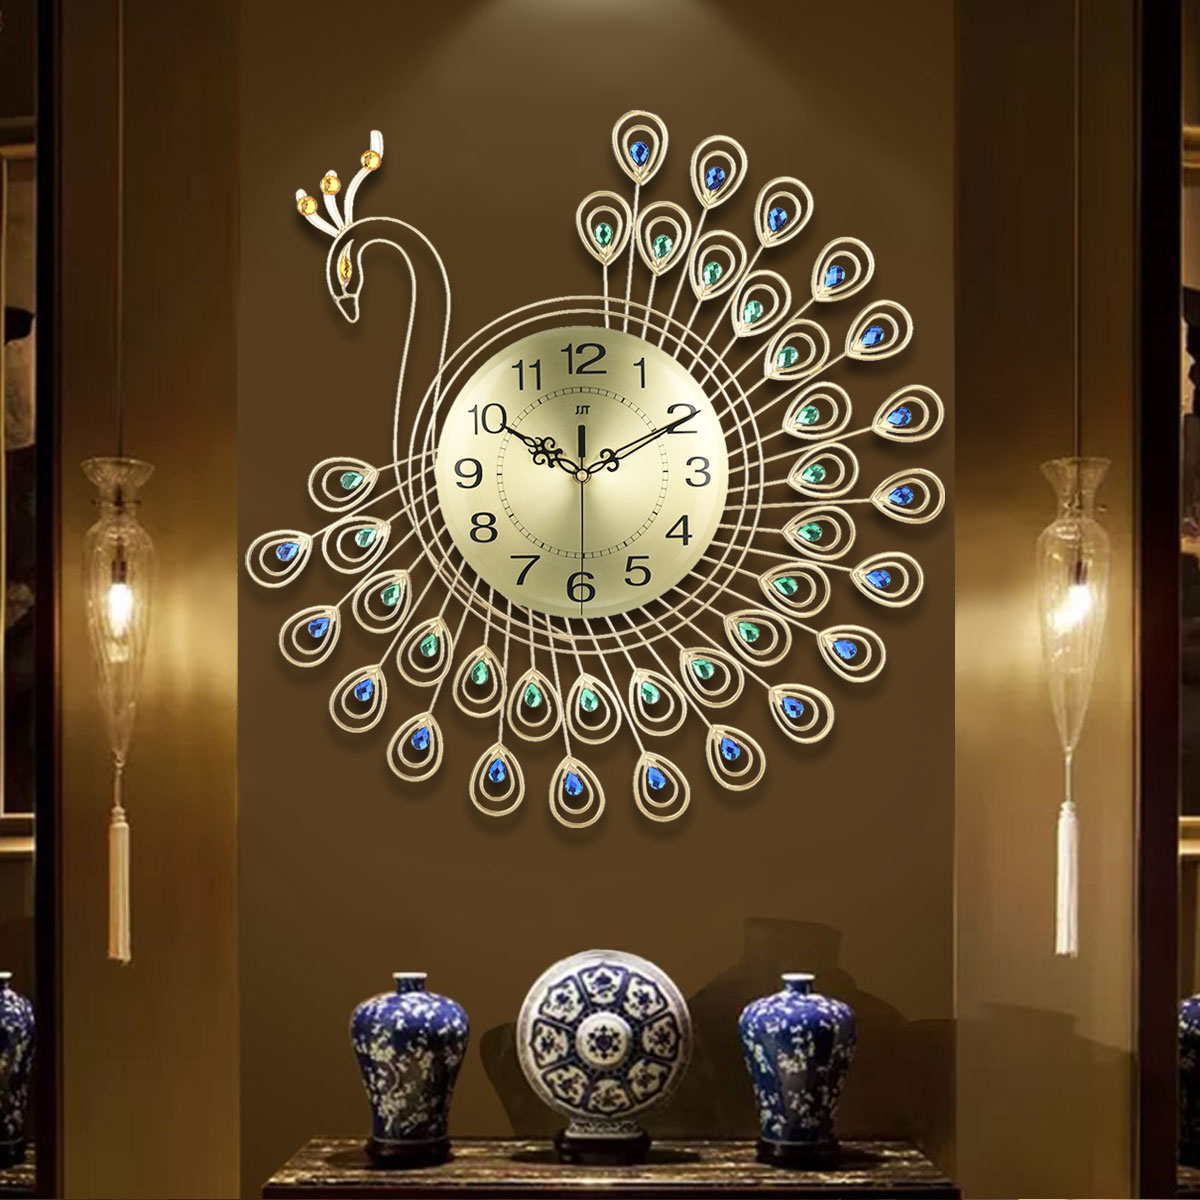 21inch Non Ticking Creative Decorative Luxury Silent 3D Large Diamonds Gold Peacock Decorative Wall Clock Metal Gift for Office/Kitchen/Bedroom/Living Room Decoration Golden